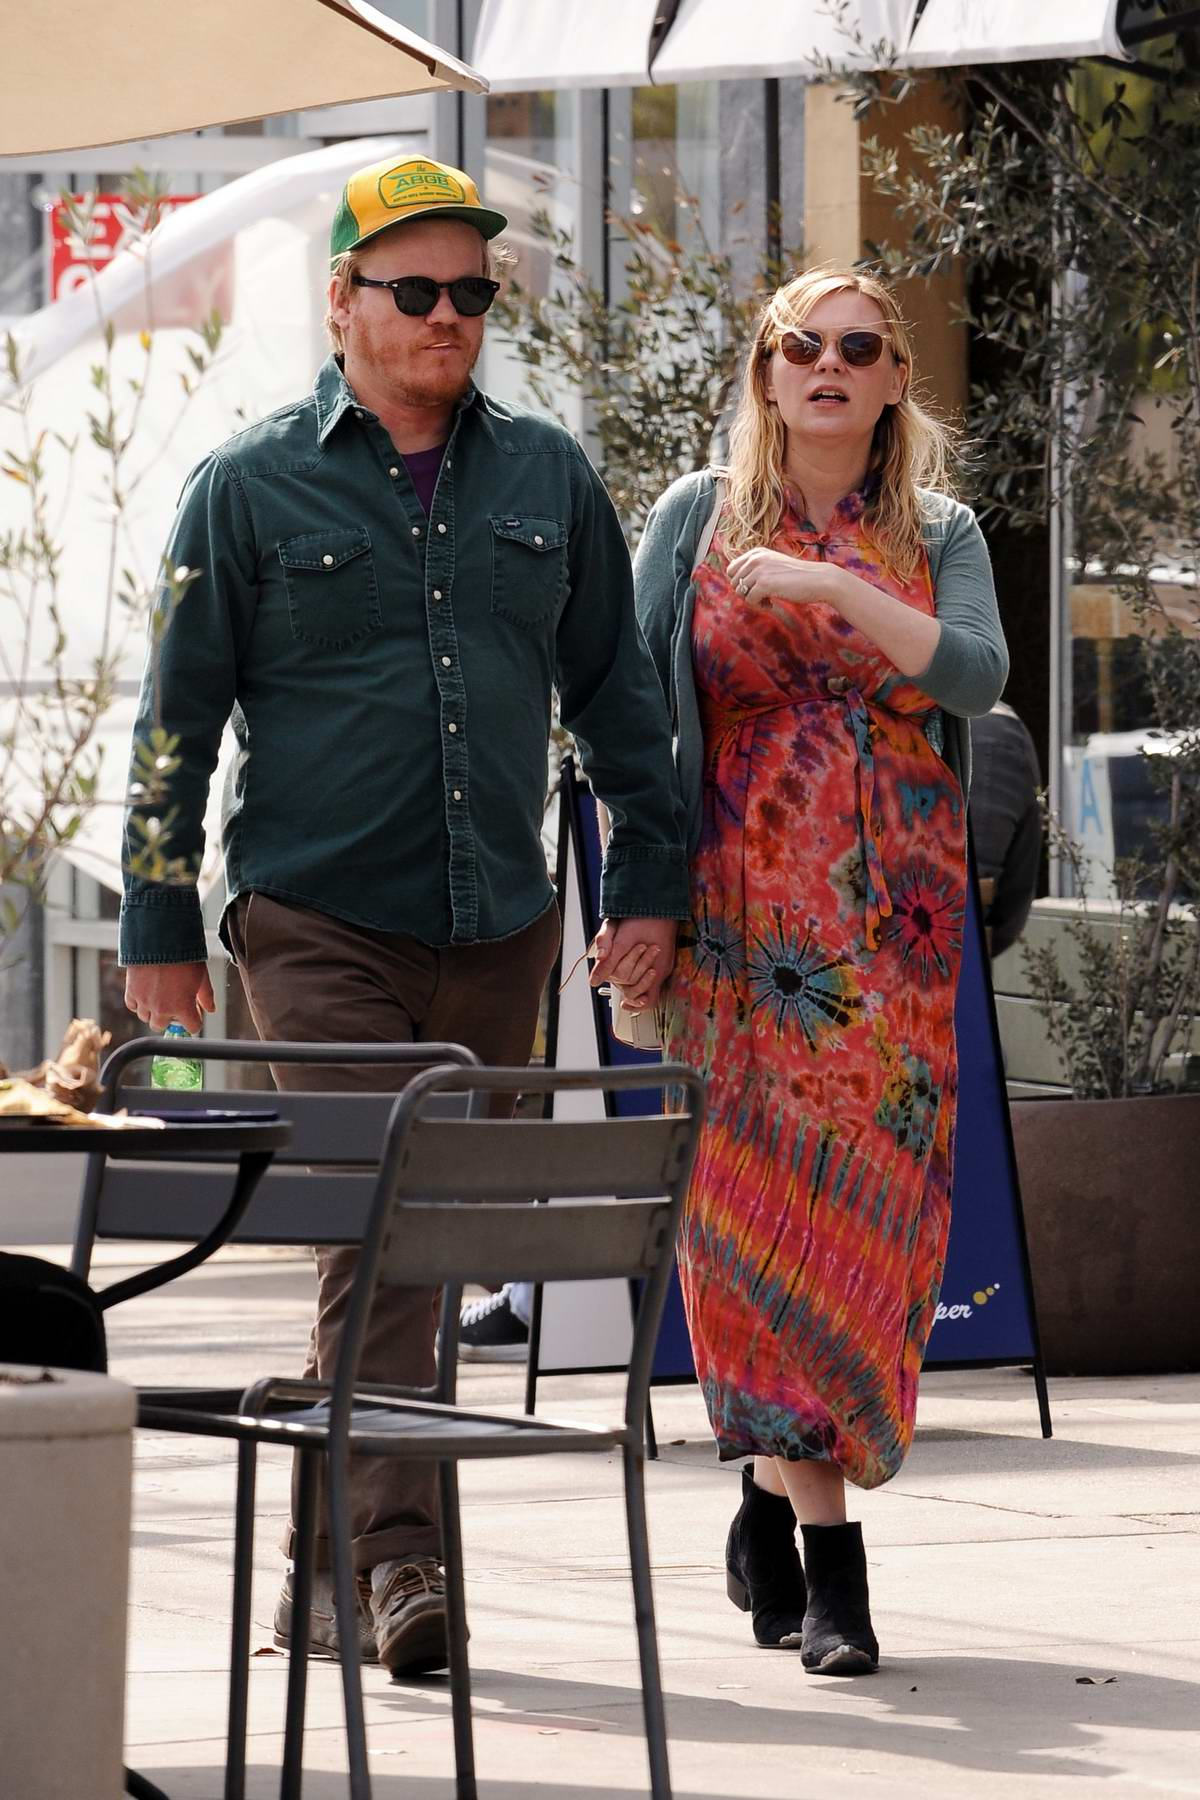 Kirsten Dunst wearing a summer orange dress while out for brunch with fiance Jesse Plemons at Proof Bakery in Atwater Village, Los Angeles